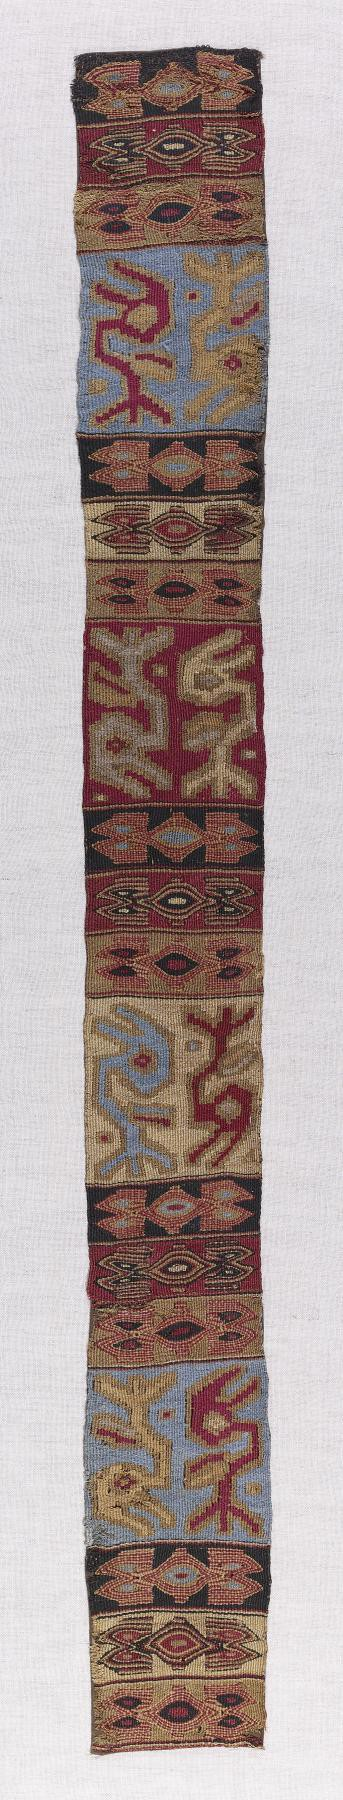 Andean Textile Fragment